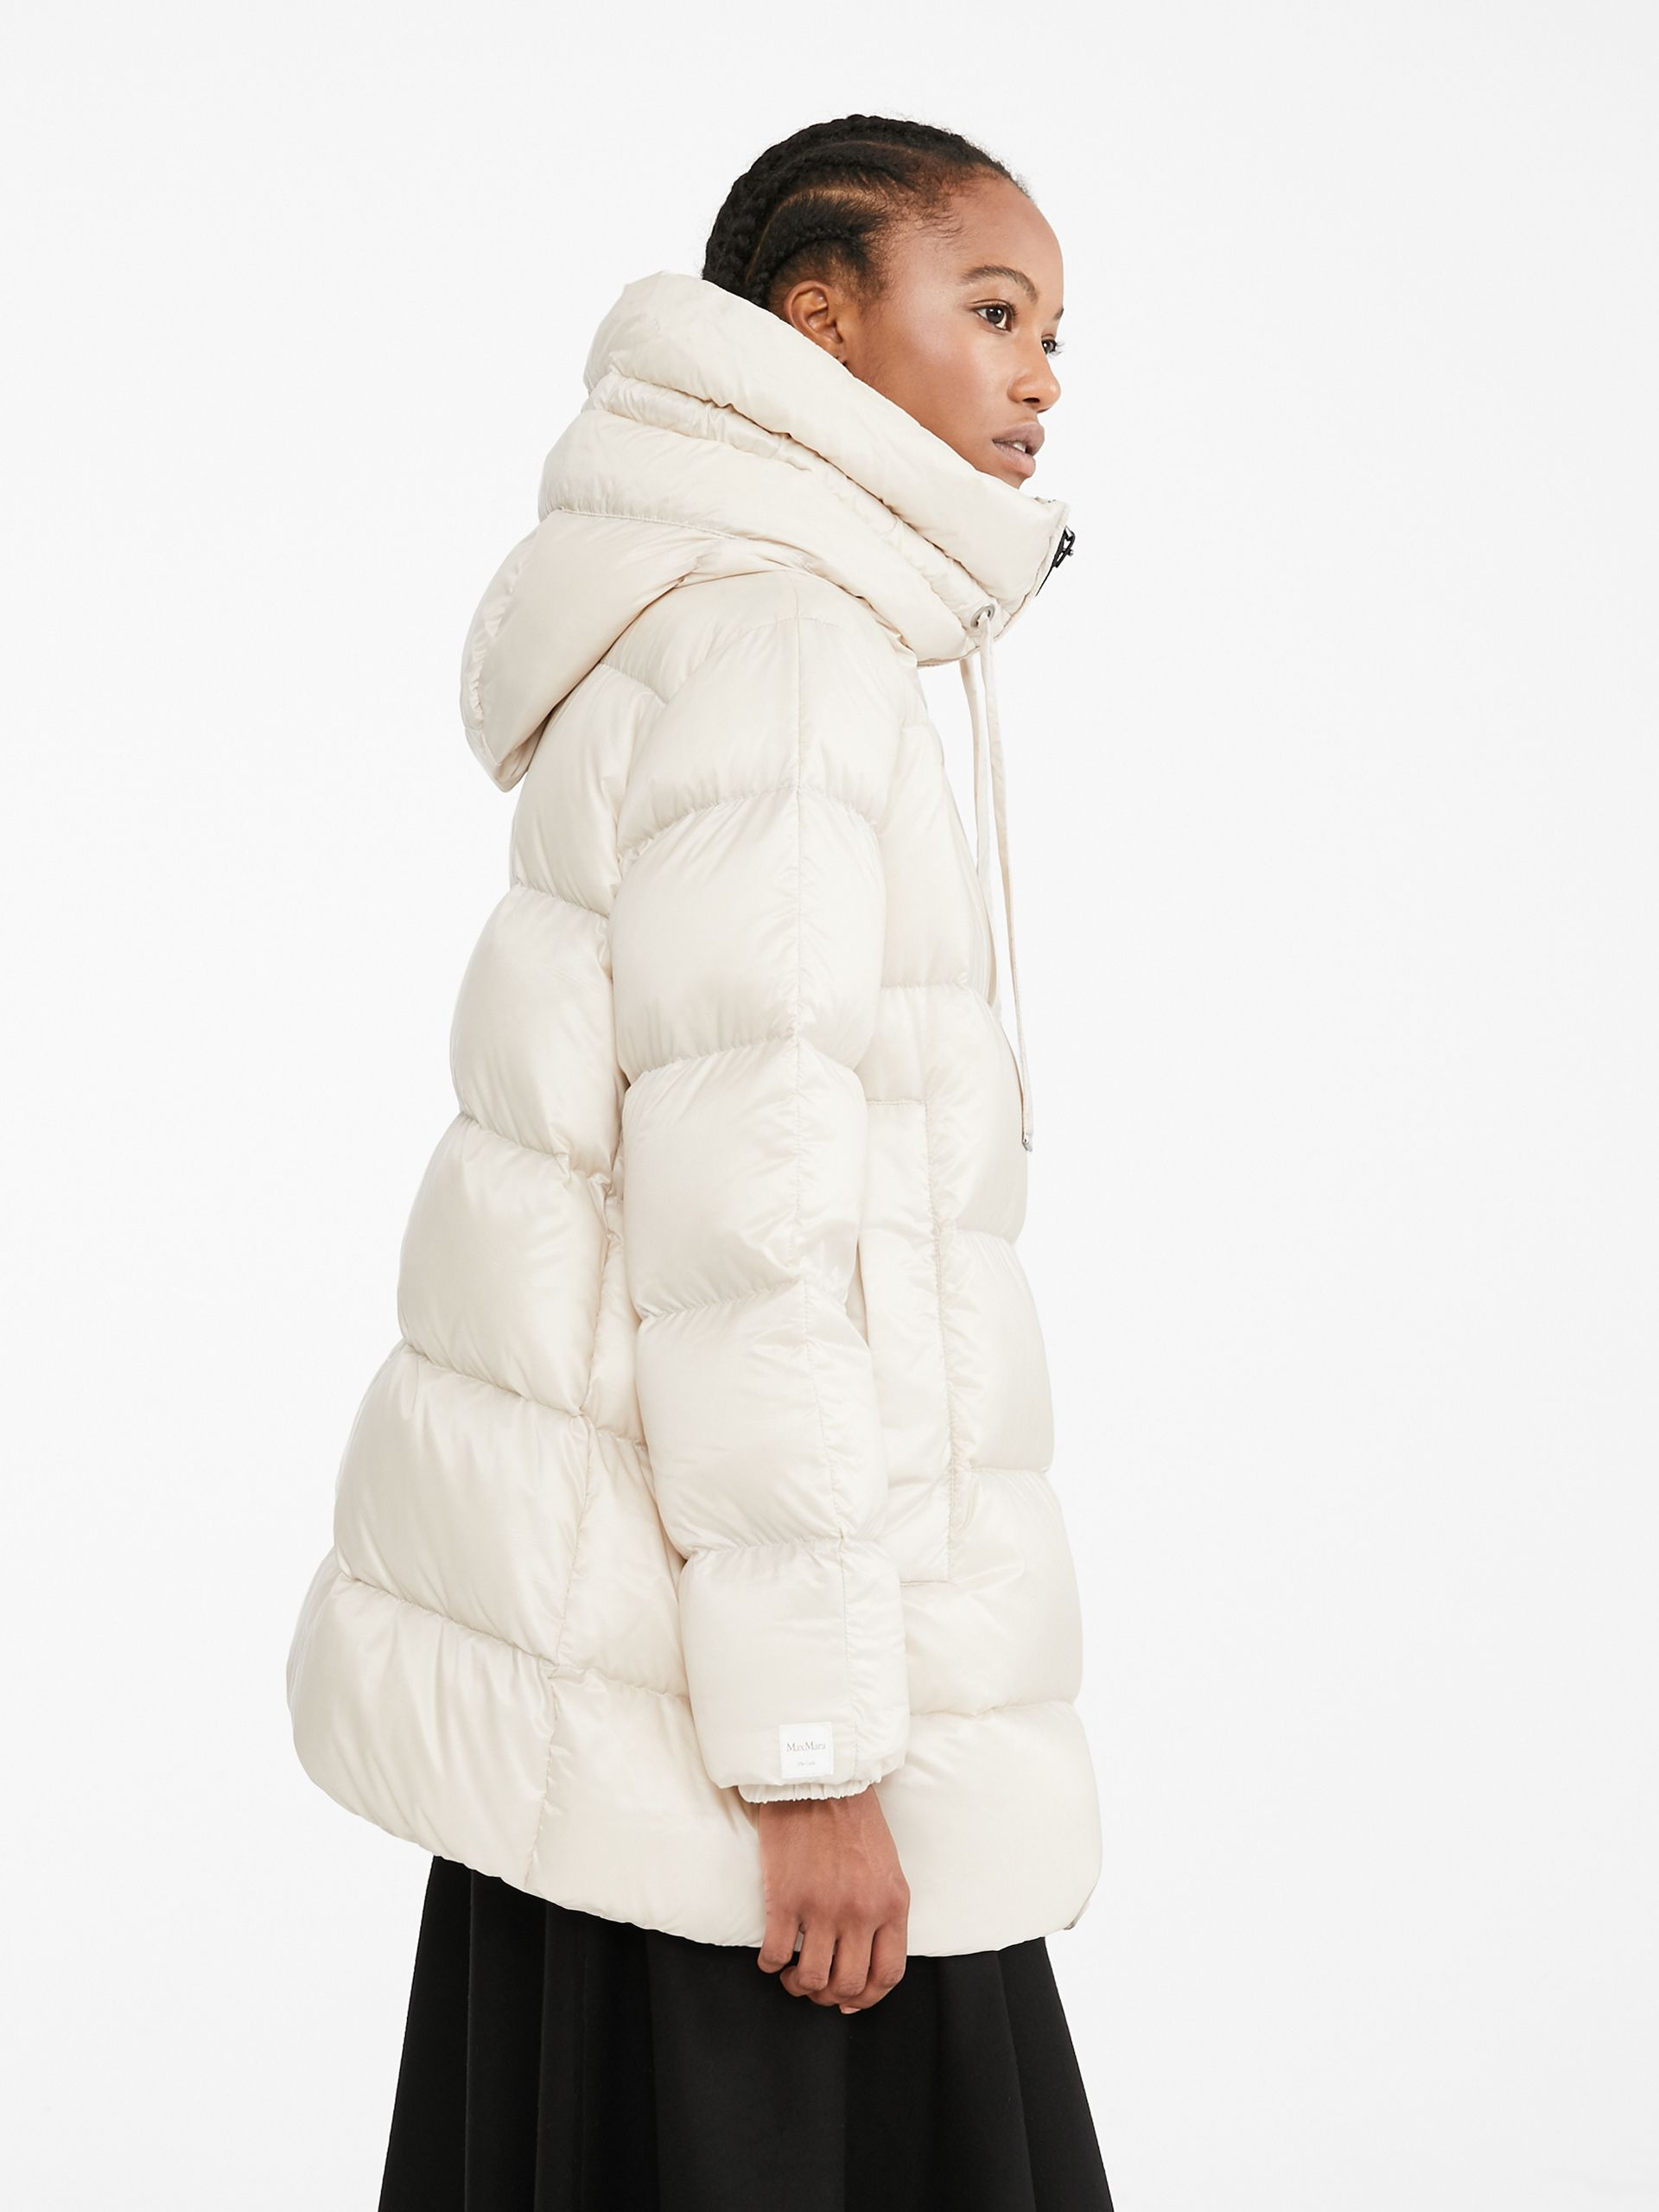 Water Resistant Fabric Down Jacket Sand Seicar Max Mara Max Mara Down Jacket Water Resistant Fabric [ 2560 x 1920 Pixel ]